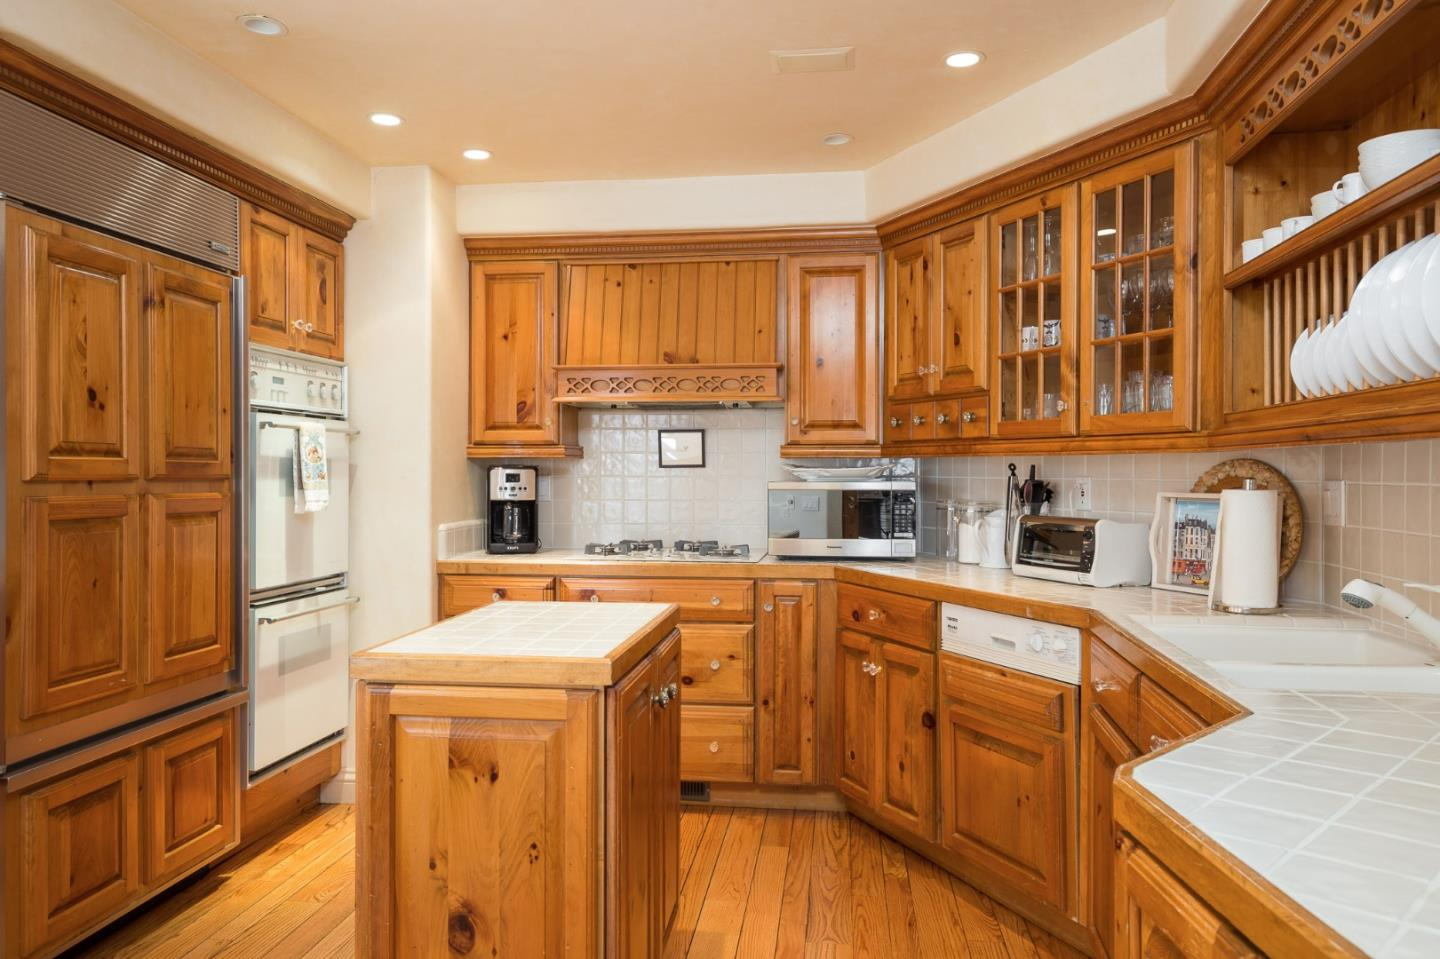 Two bedroom two bath storybook home for sale in Carmel CA - kitchenjpg